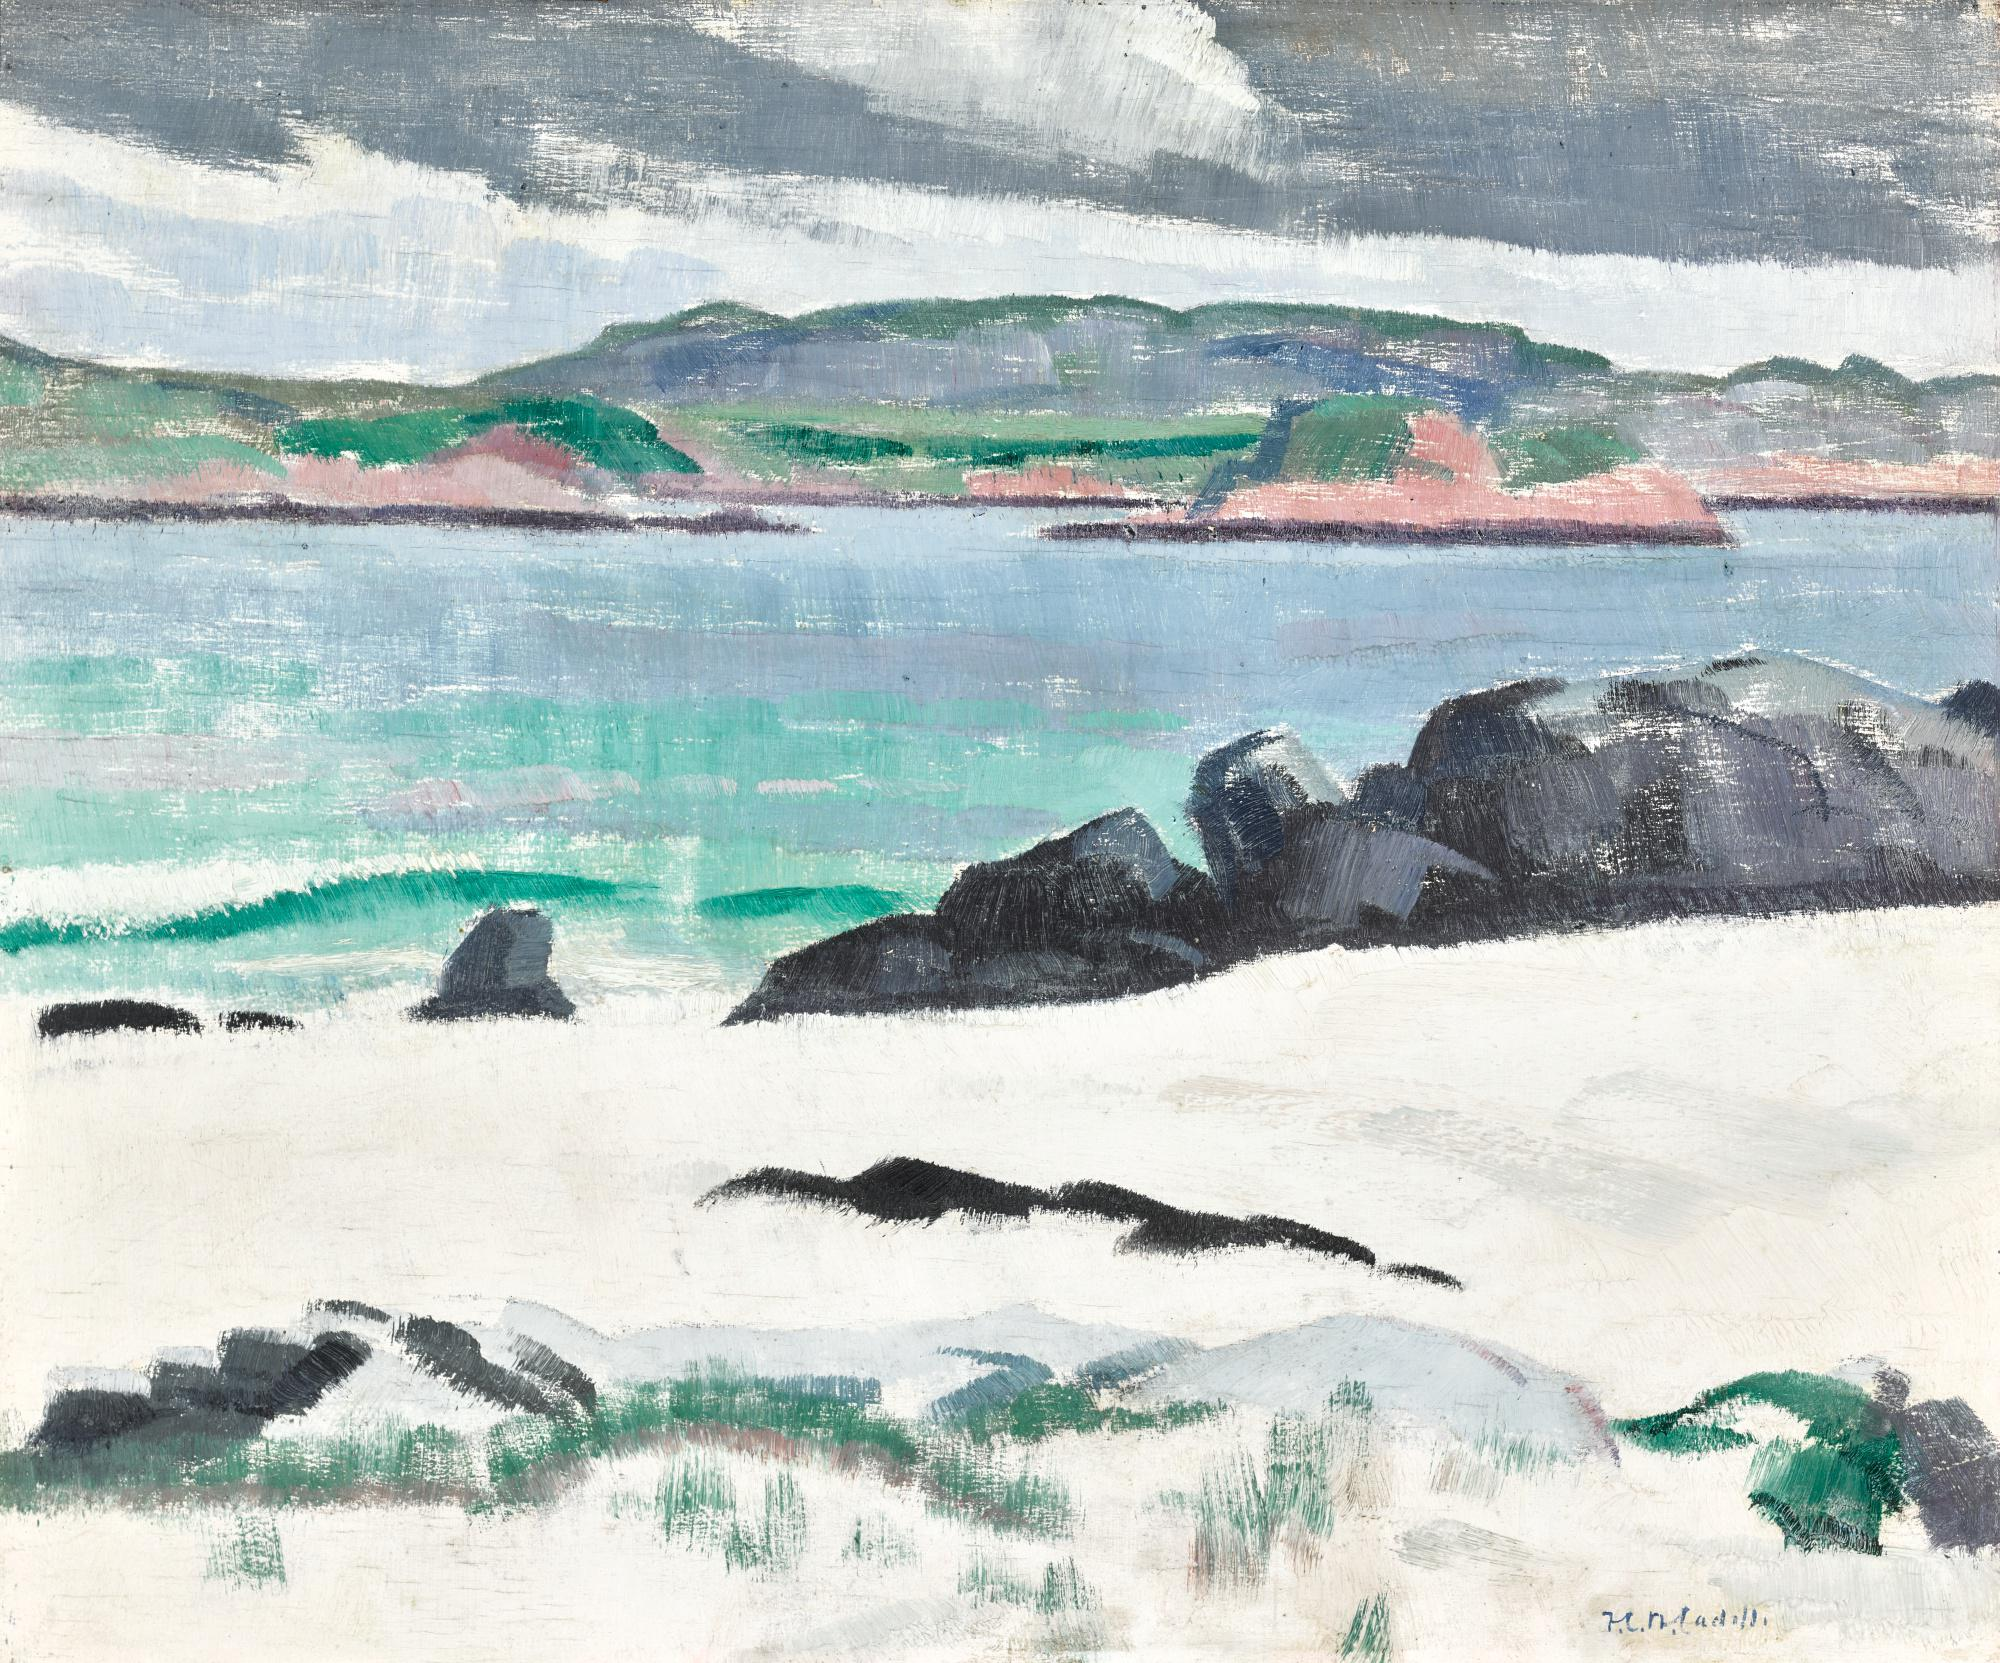 FRANCIS CAMPBELL BOILEAU CADELL, R.S.A., R.S.W. | IONA, COWS ROCK AND THE ROSS OF MULL